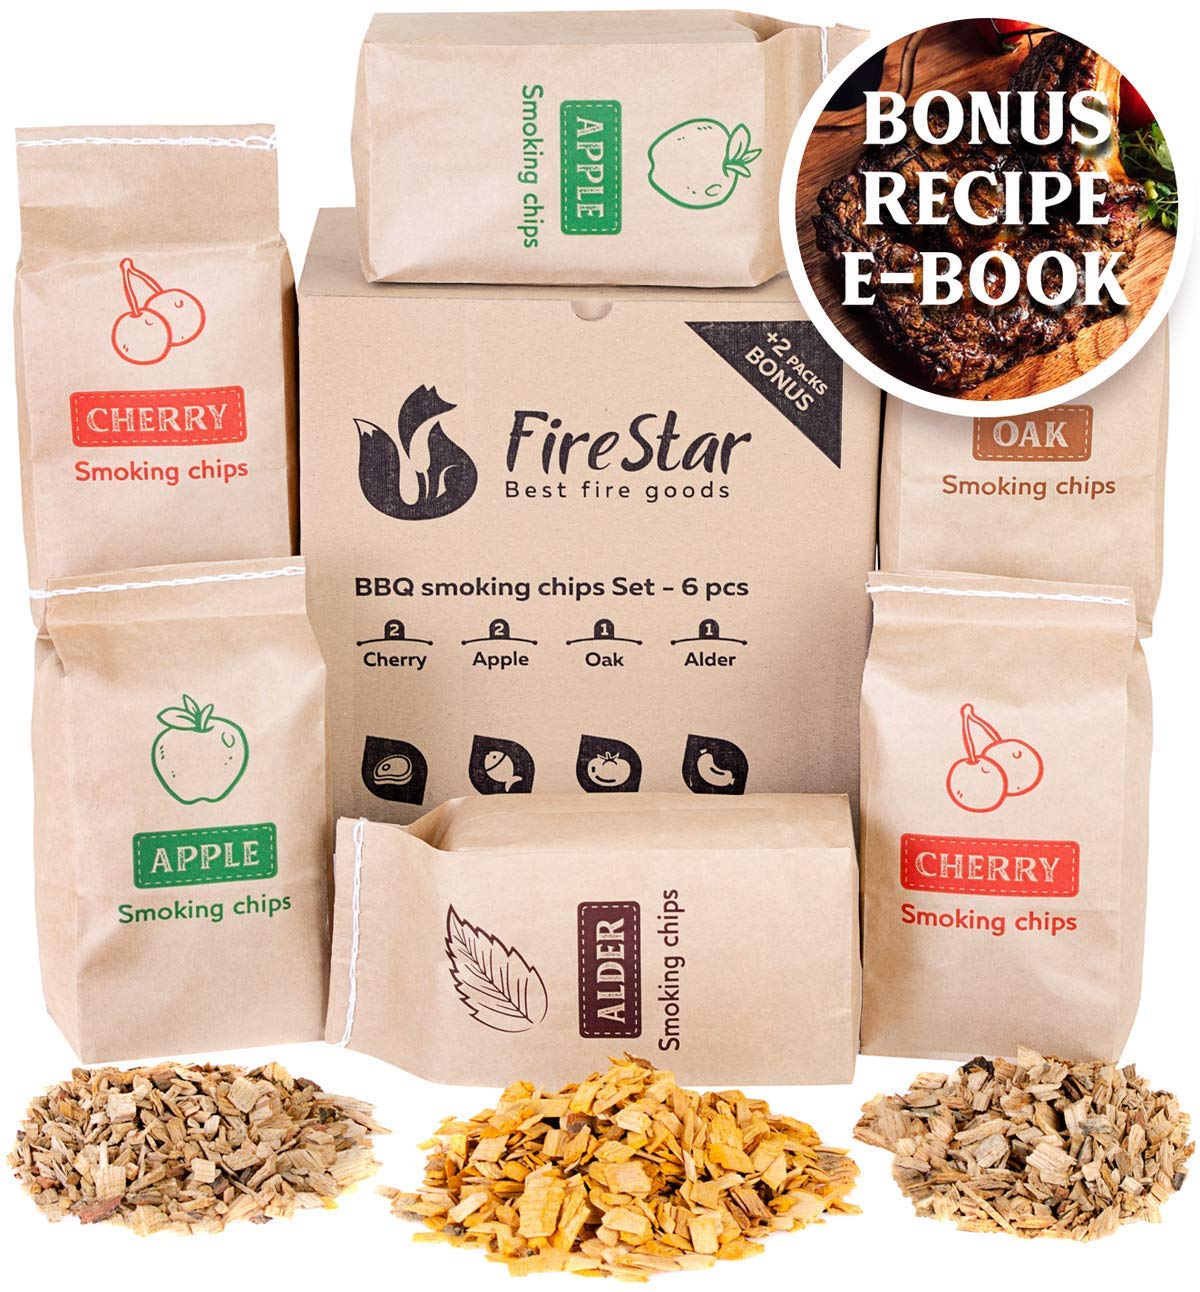 Wood chips for smokers - Oak | Alder | Cherry | Apple smoker chips - Wood chips for smoking and grilling (bbq and grill) - Variety pack 6 pcs + bonus e-book by FireStar